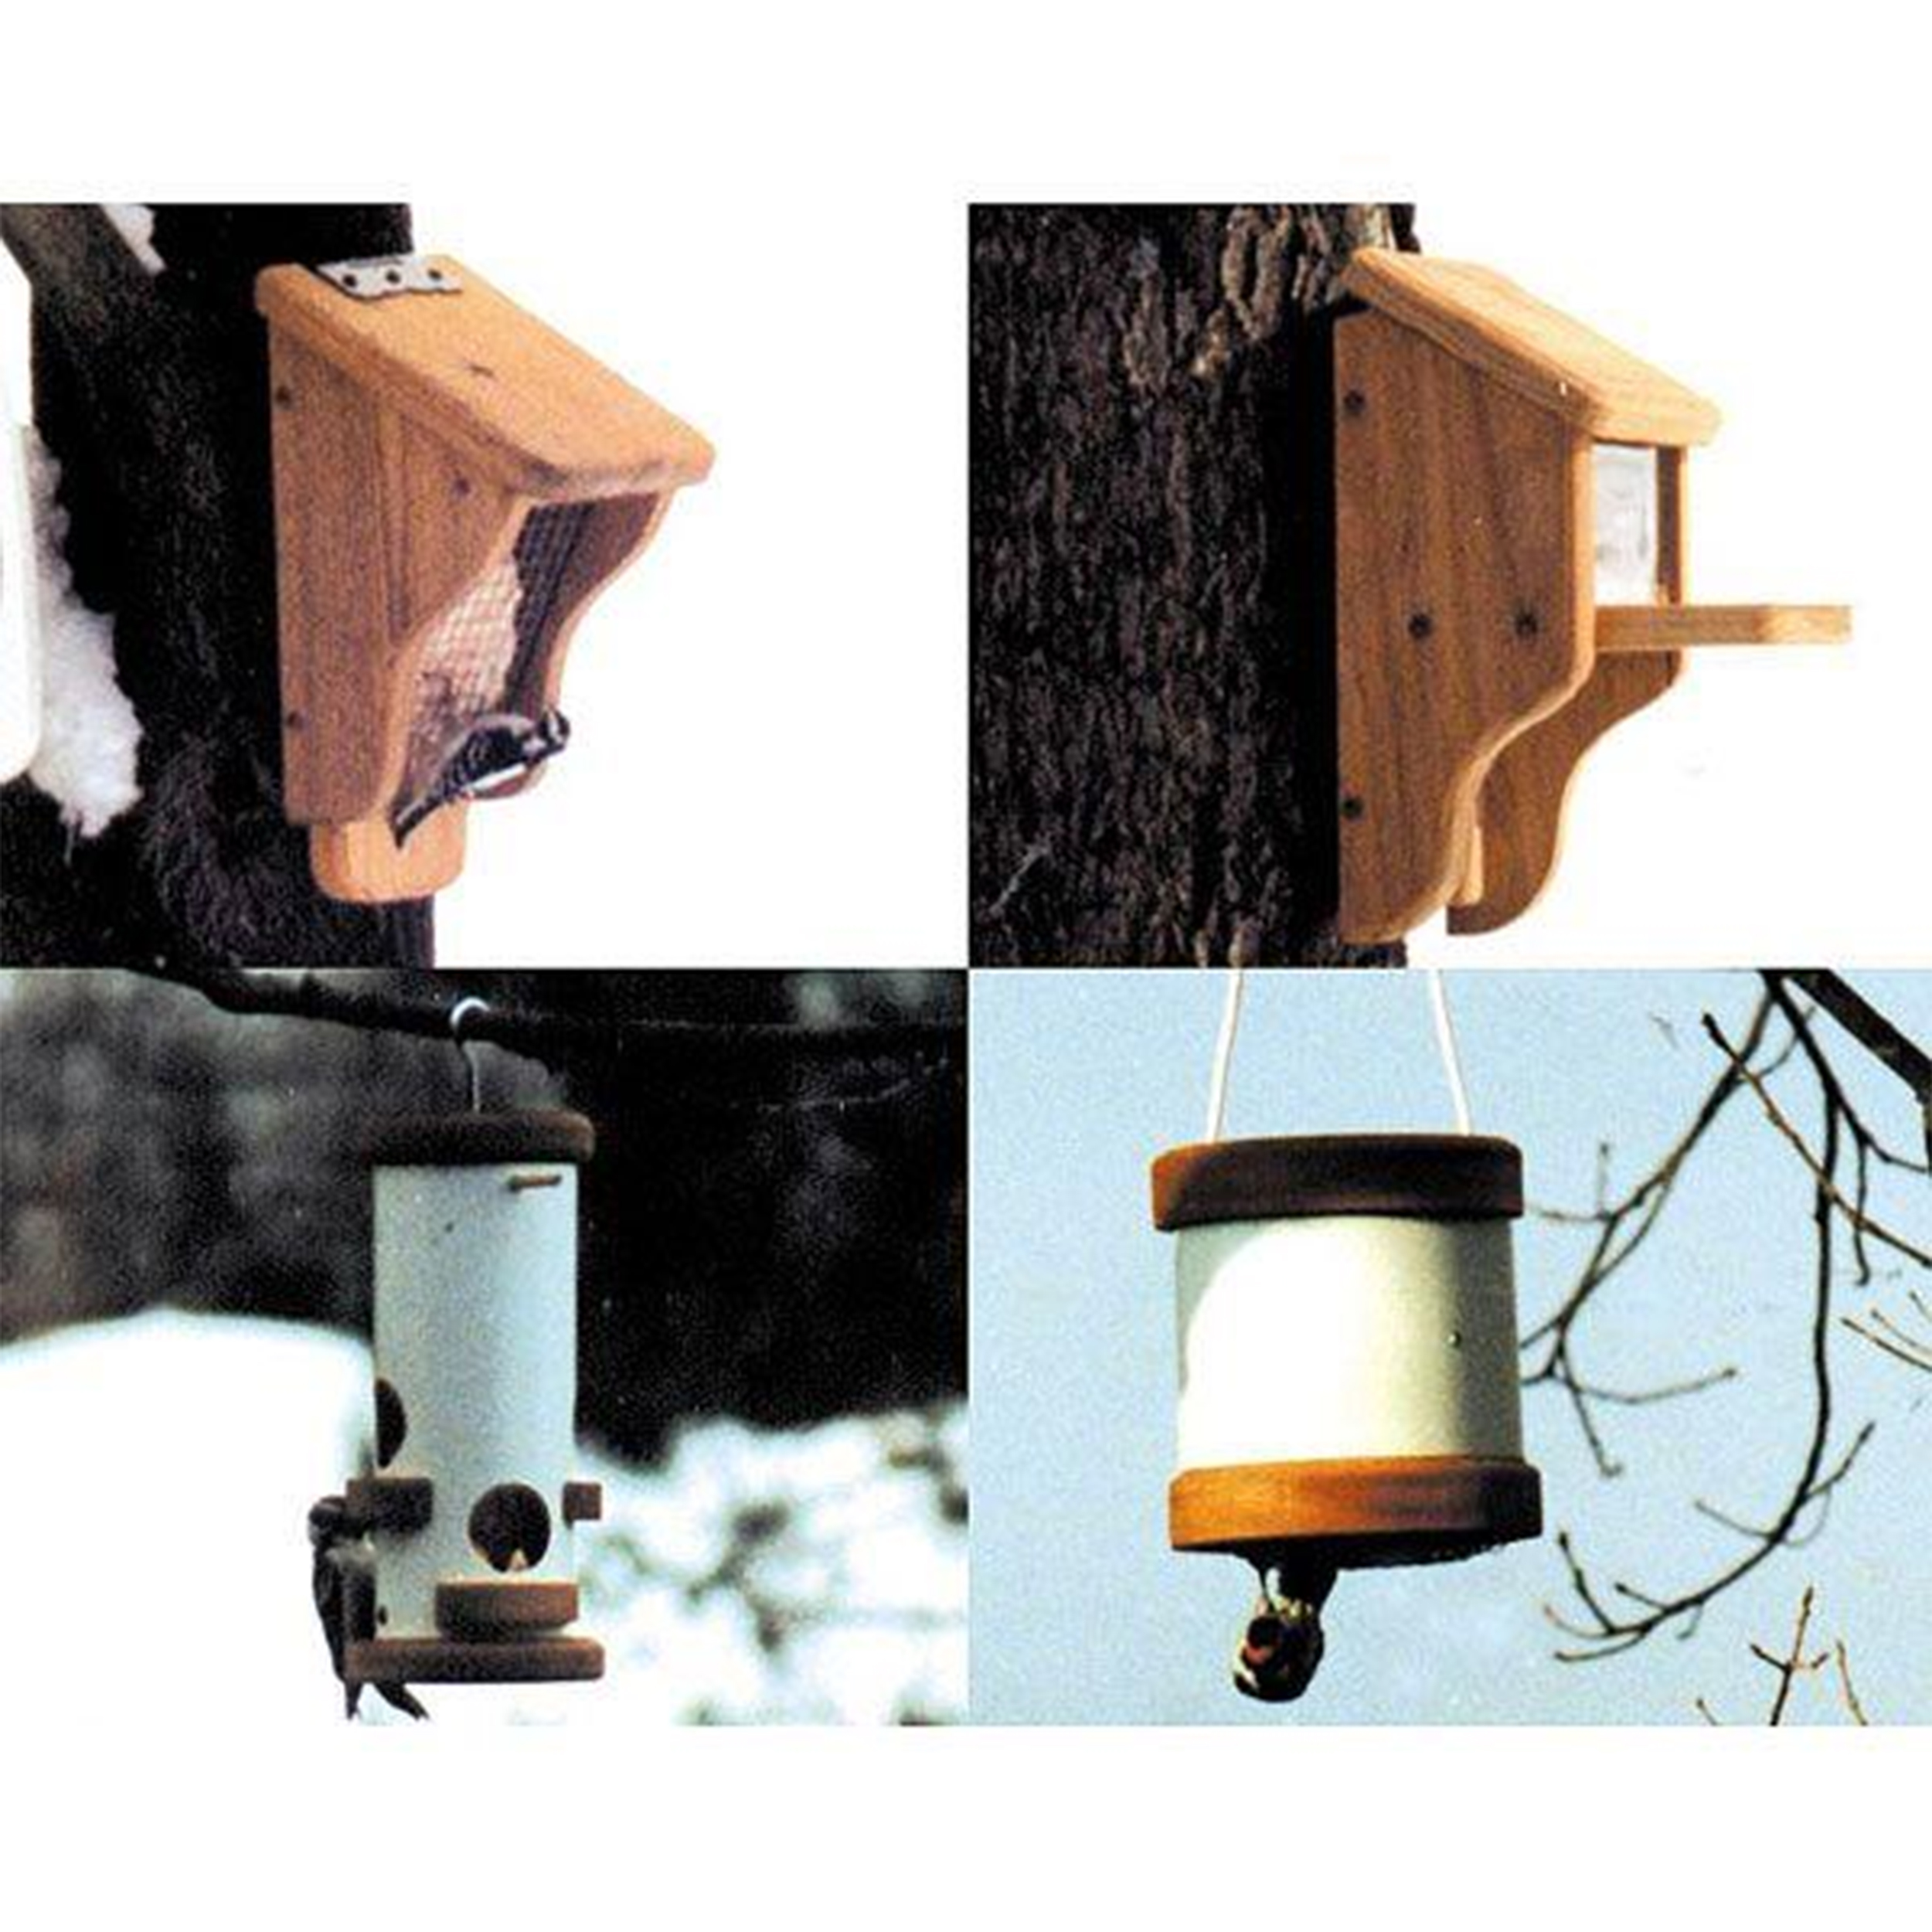 Woodworking Project Paper Plan to Build Suet and Squirrel Feeders